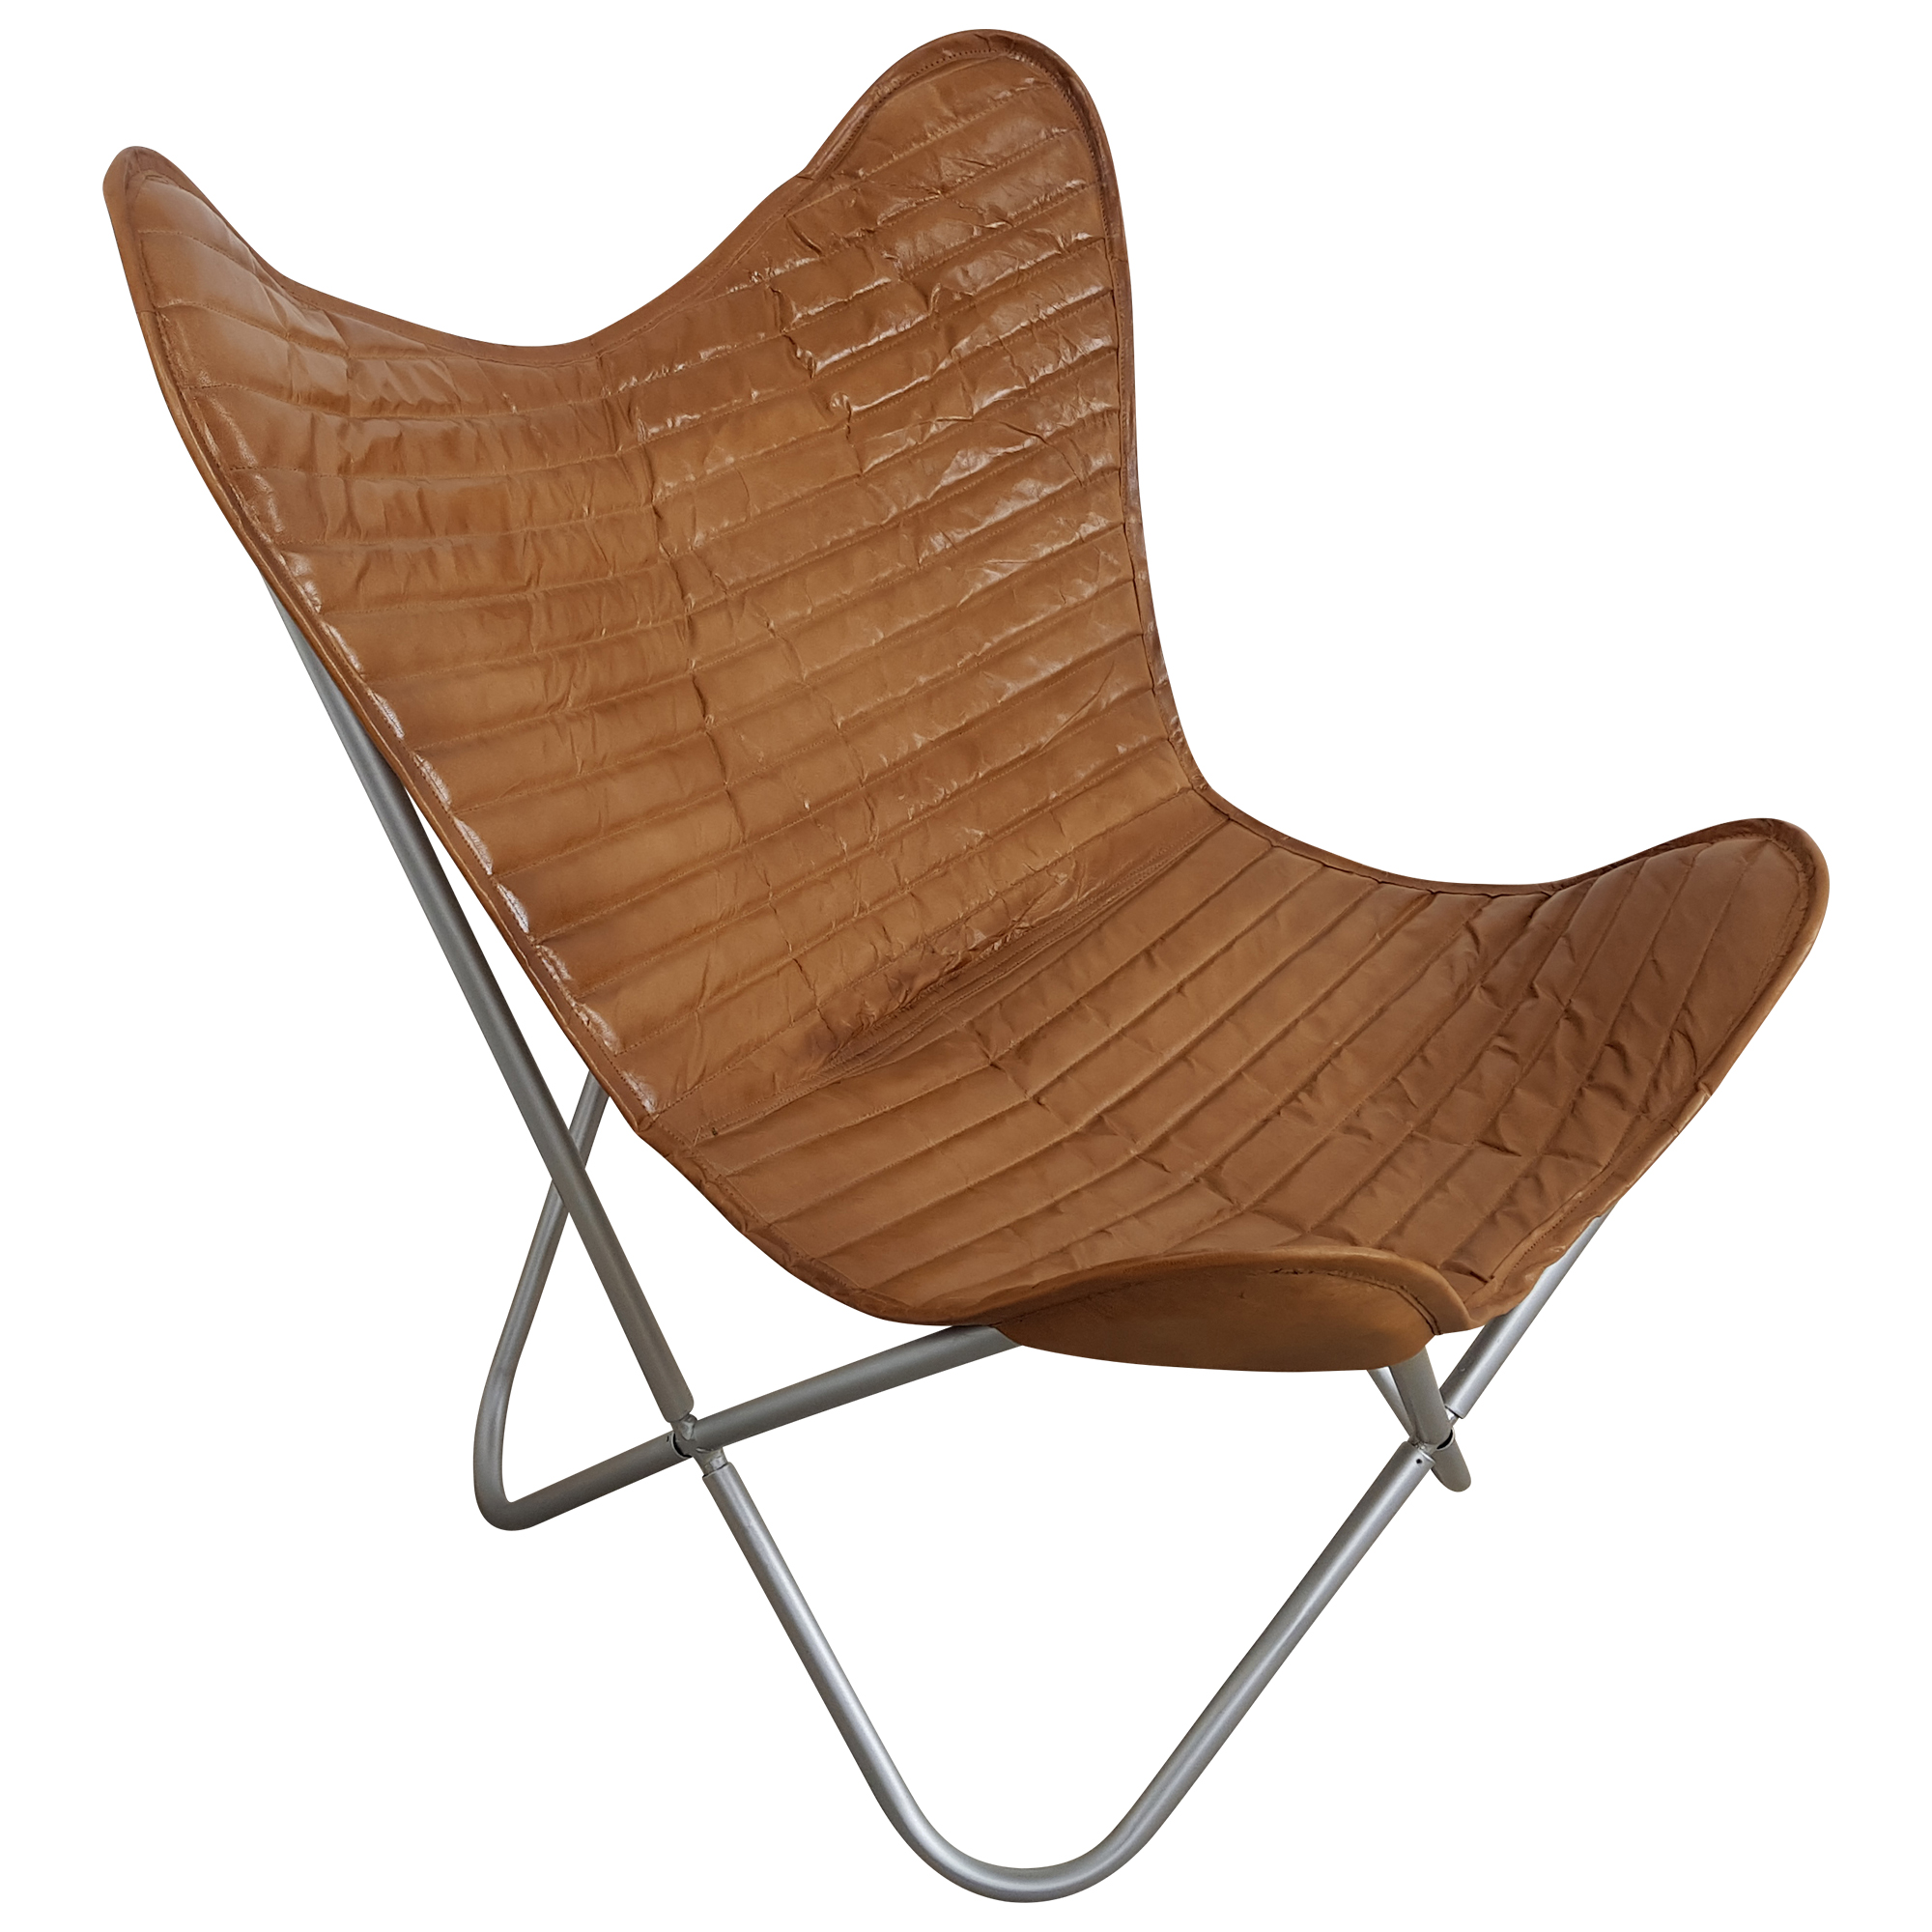 Sessel Retro Butterfly Chair Sessel Design Lounge Stuhl Echt Leder Braun Loungesessel Retro